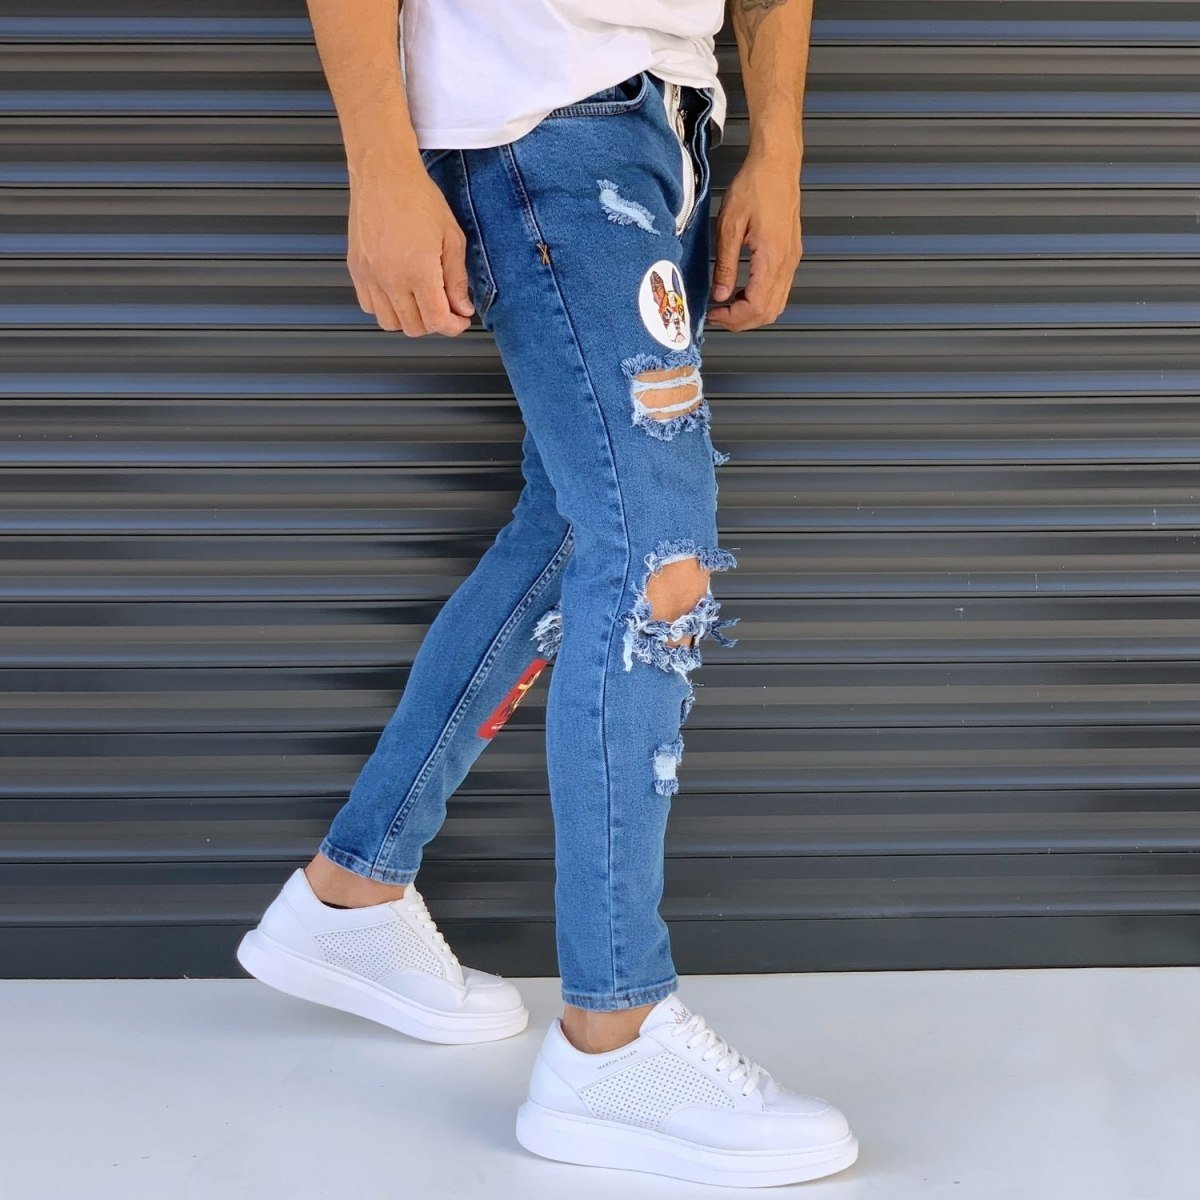 Men's Street Jeans With Heavy Rips And Patchwork Blue Mv Premium Brand - 2